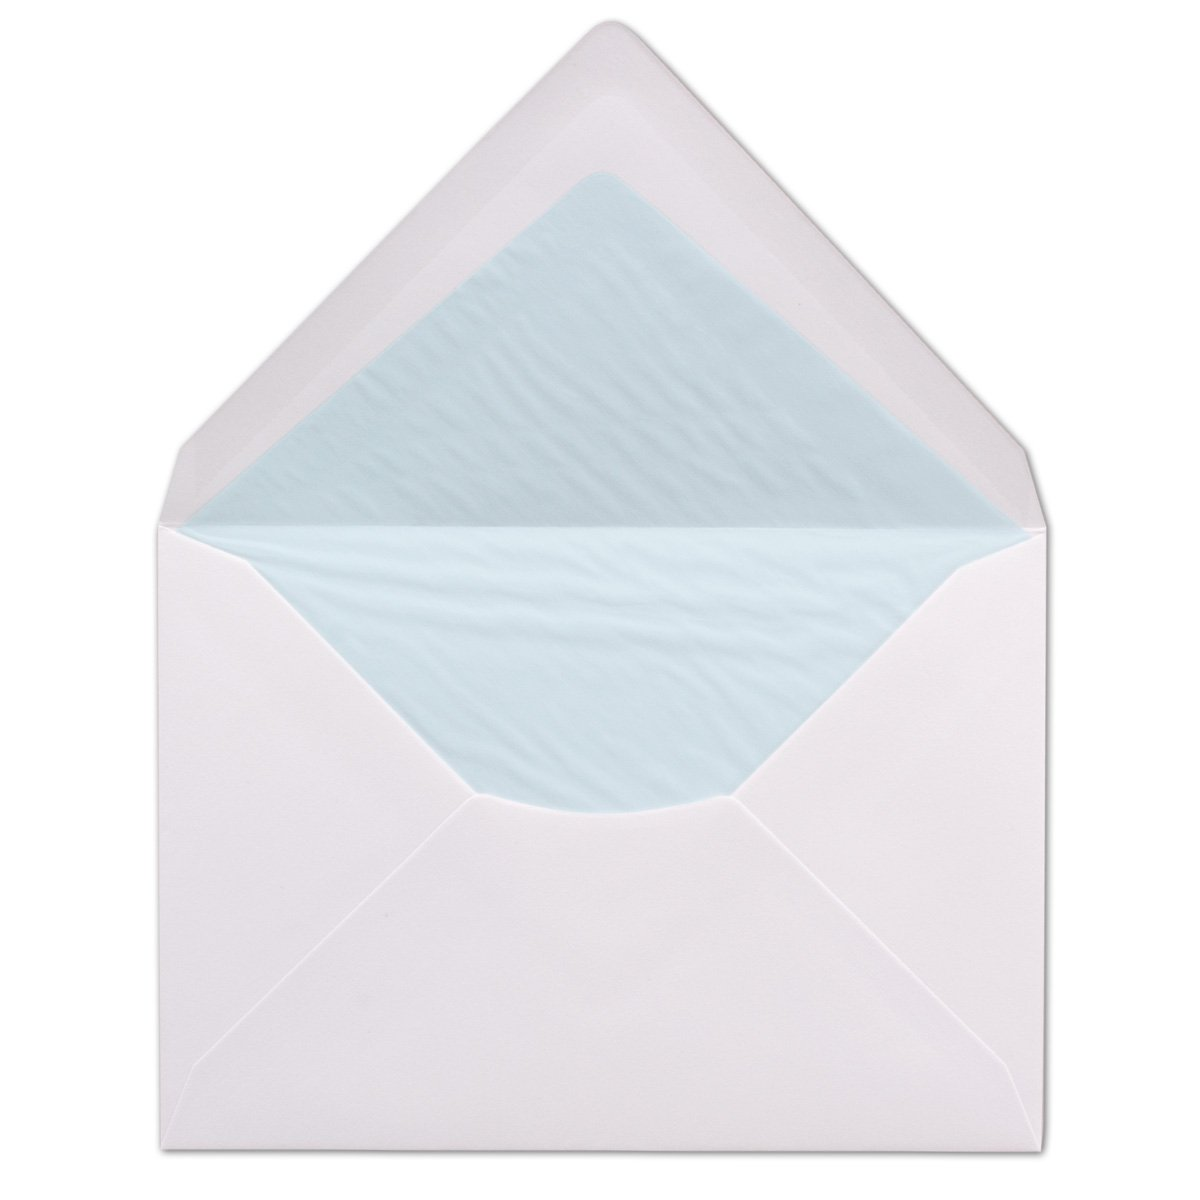 114 mm x 162 mm 100 100 g//m² White Envelopes DIN C6 Lined with Tissue Paper